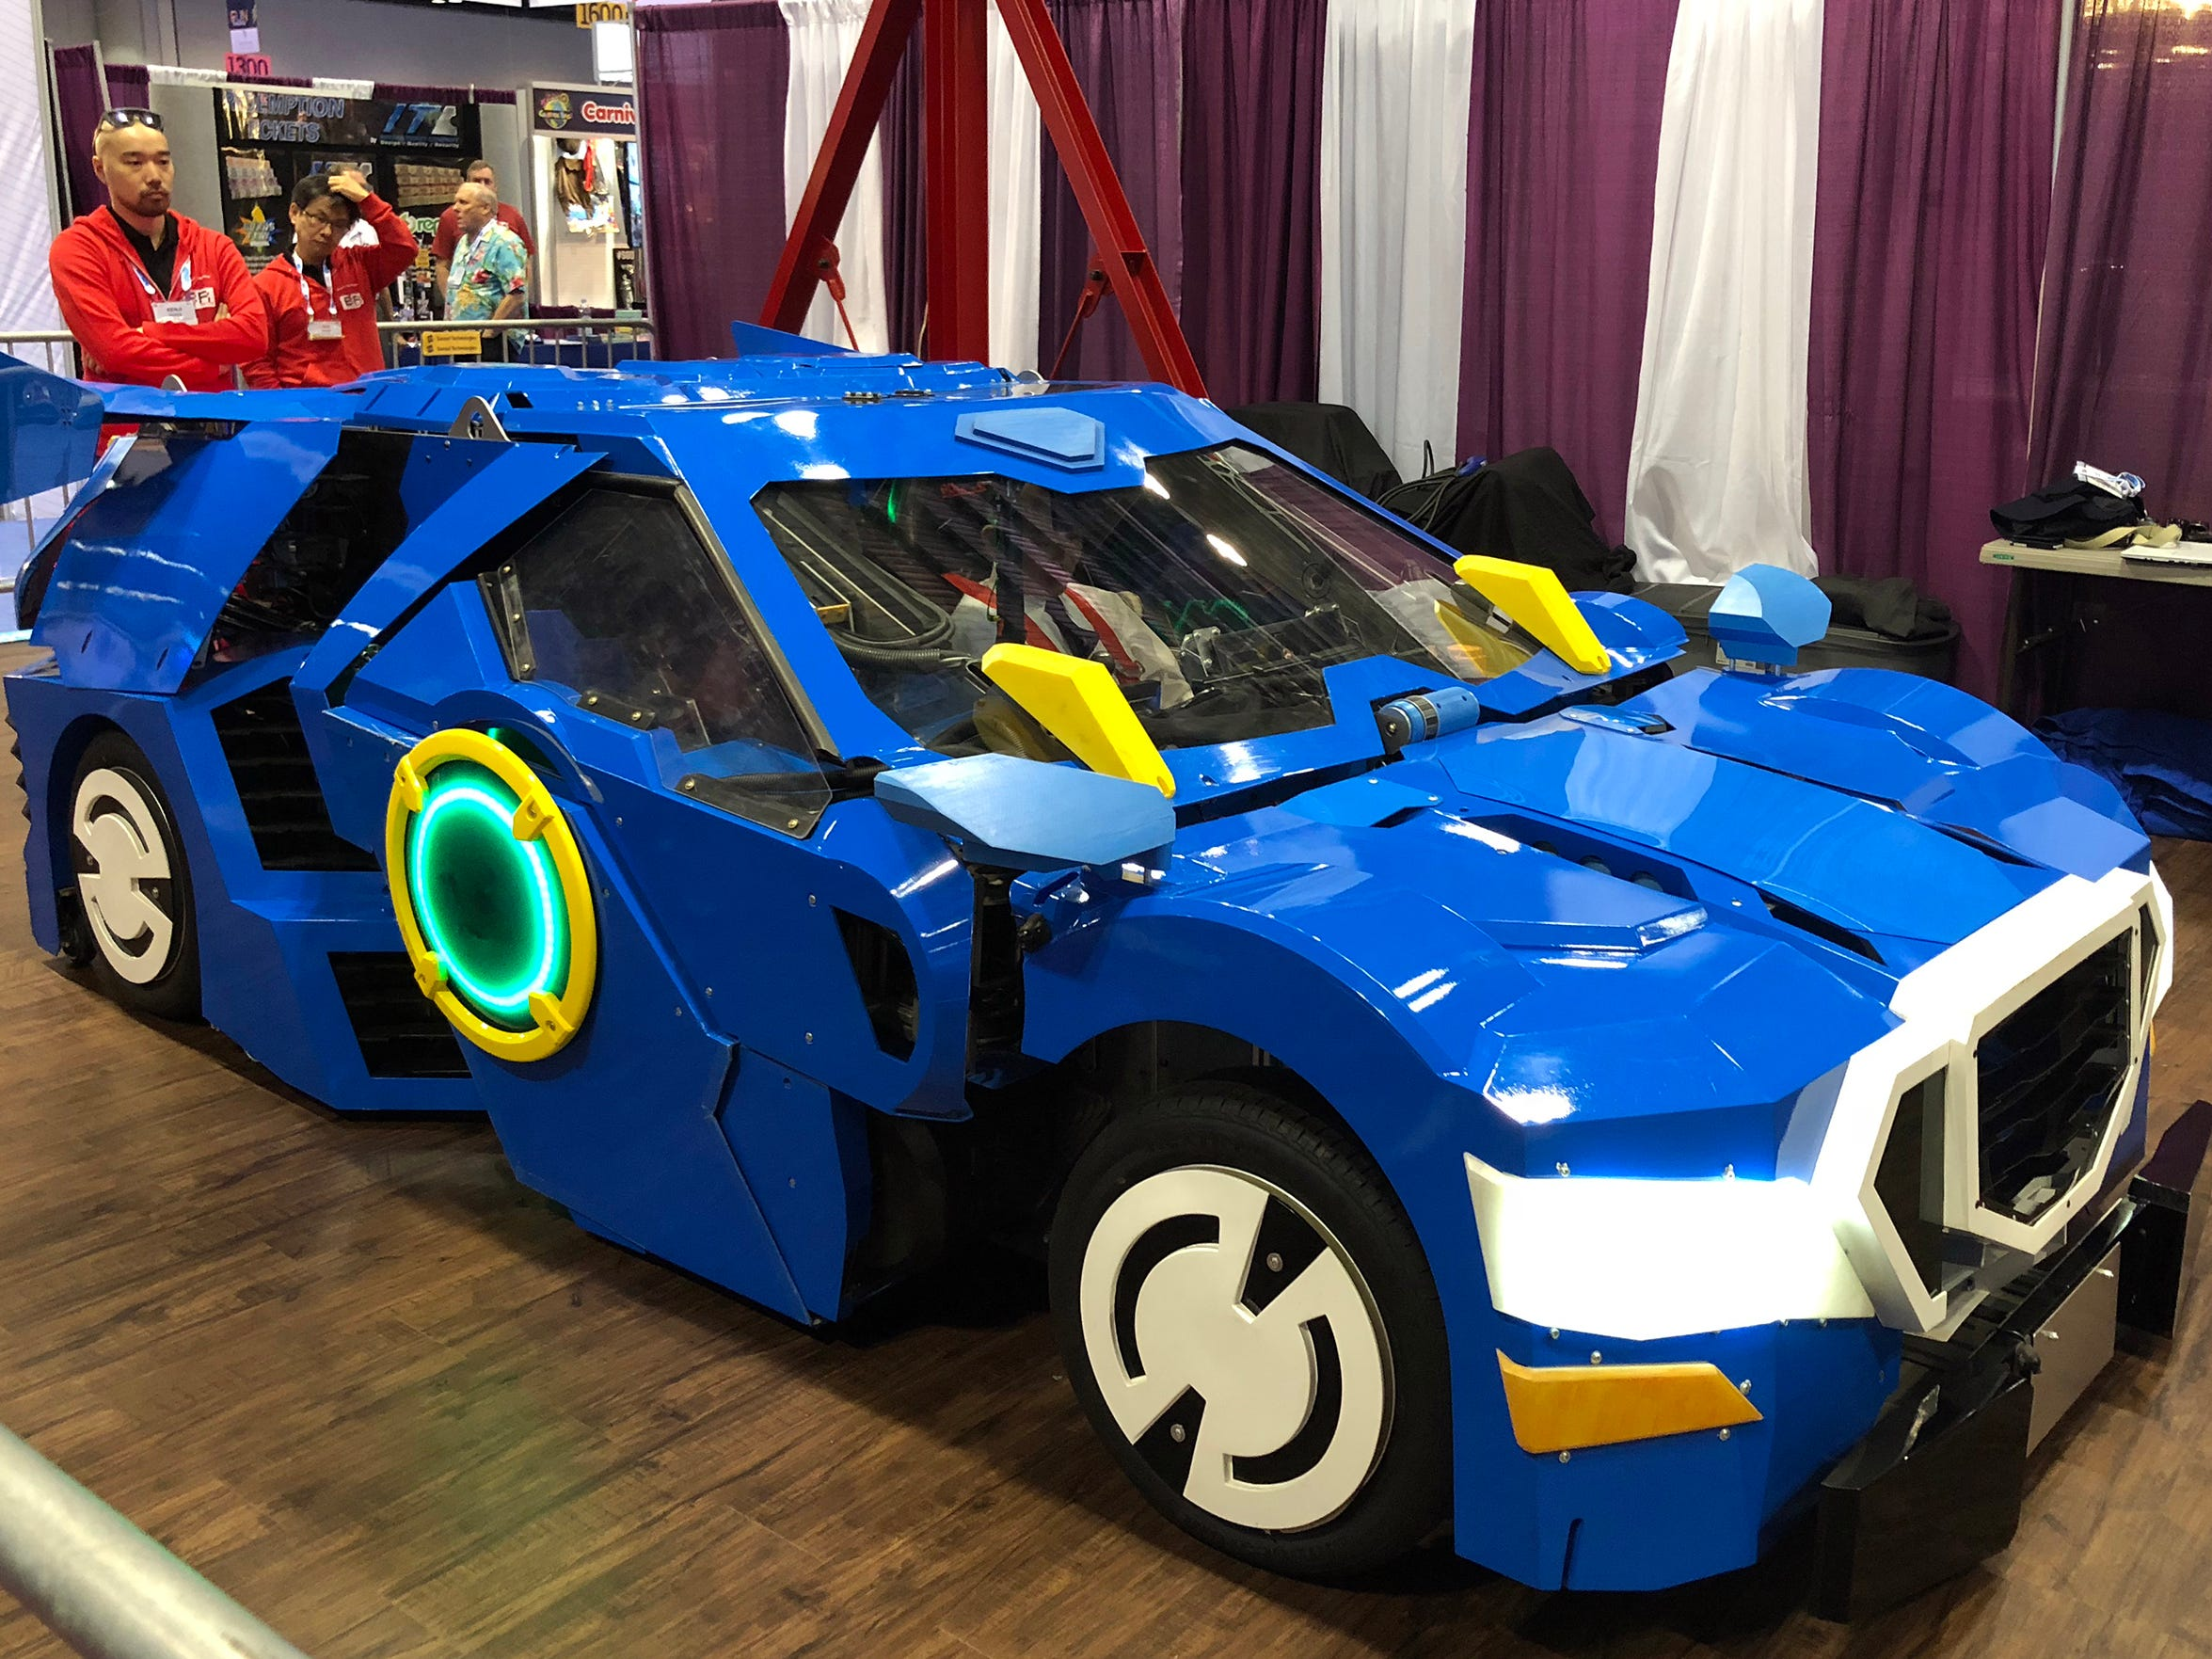 Sansei Technologies demonstrated J-Deite, a prototype of an actual, full-sized car that converts into a larger-than-life robot.